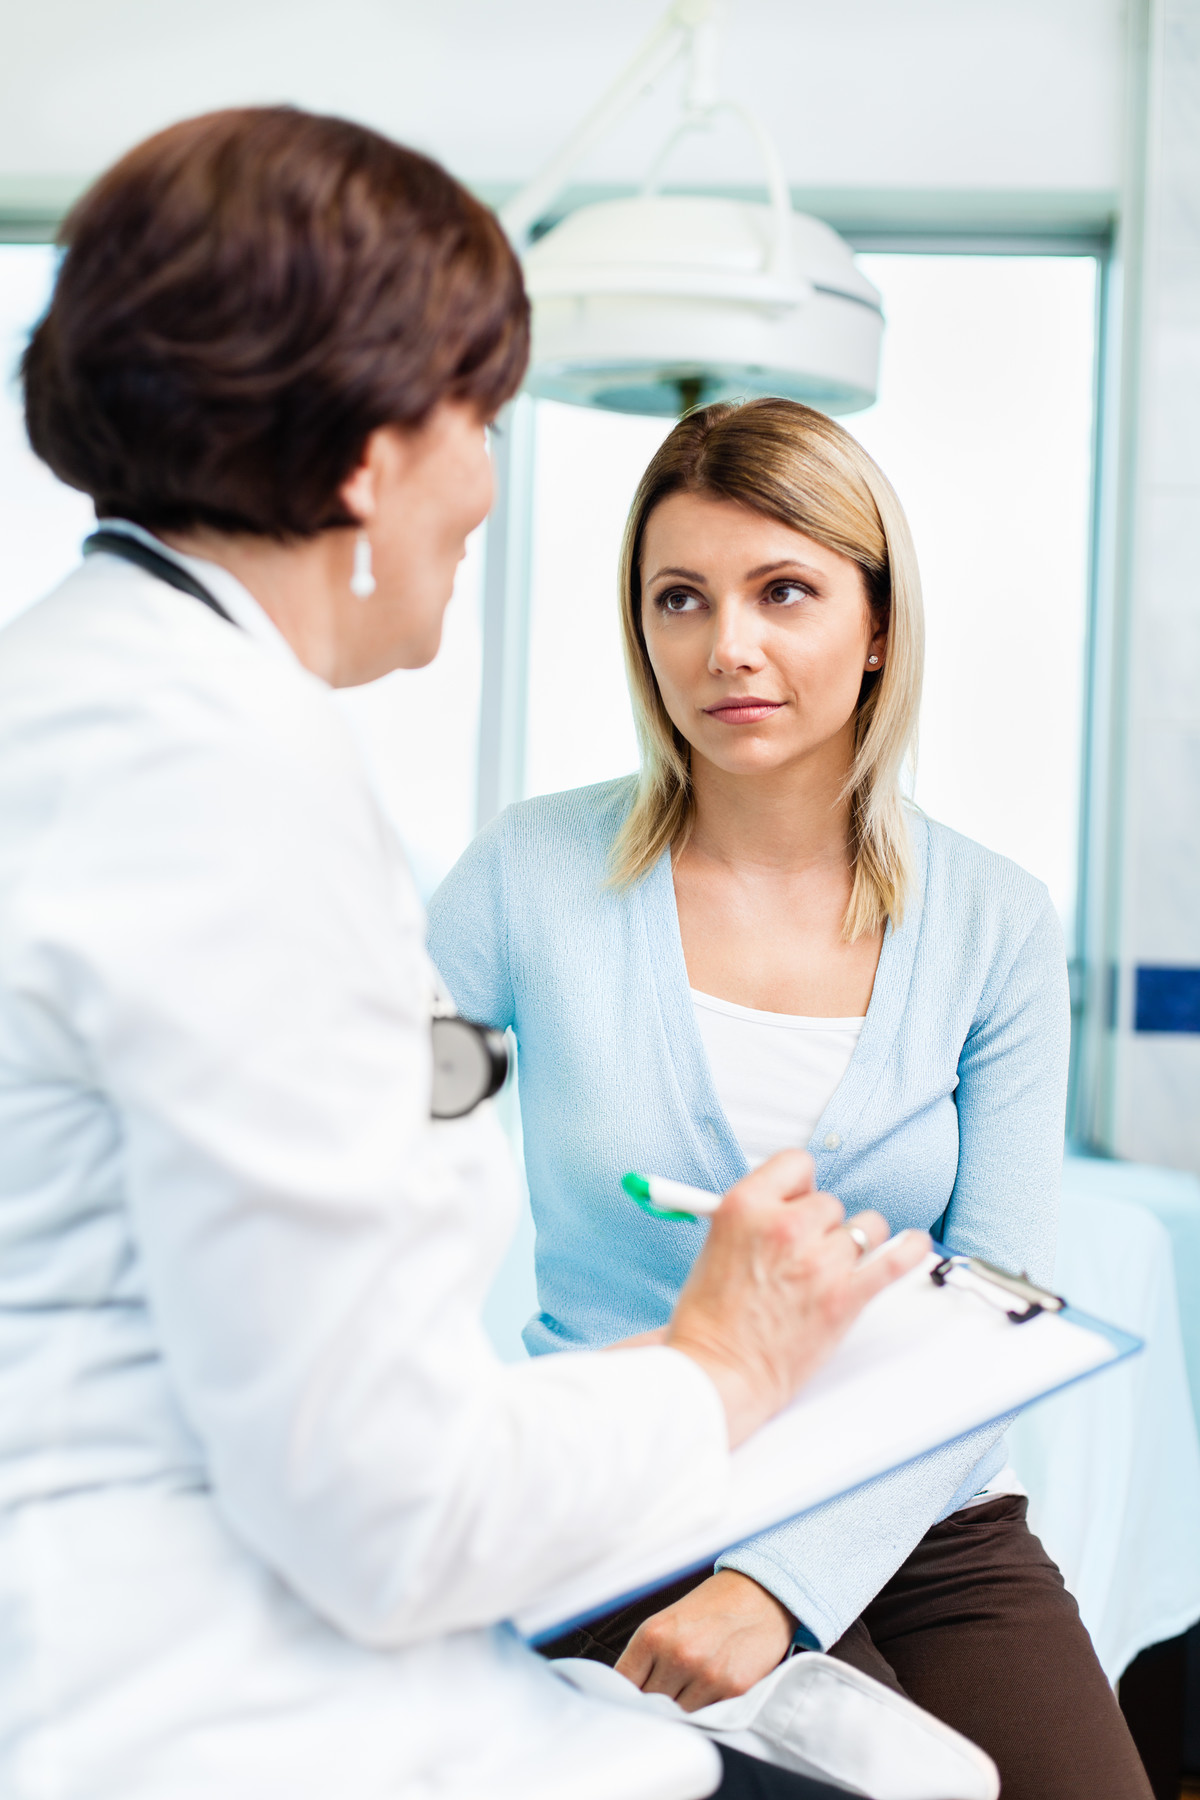 Medical professional with pen and clipboard talking with woman who looks concerned.